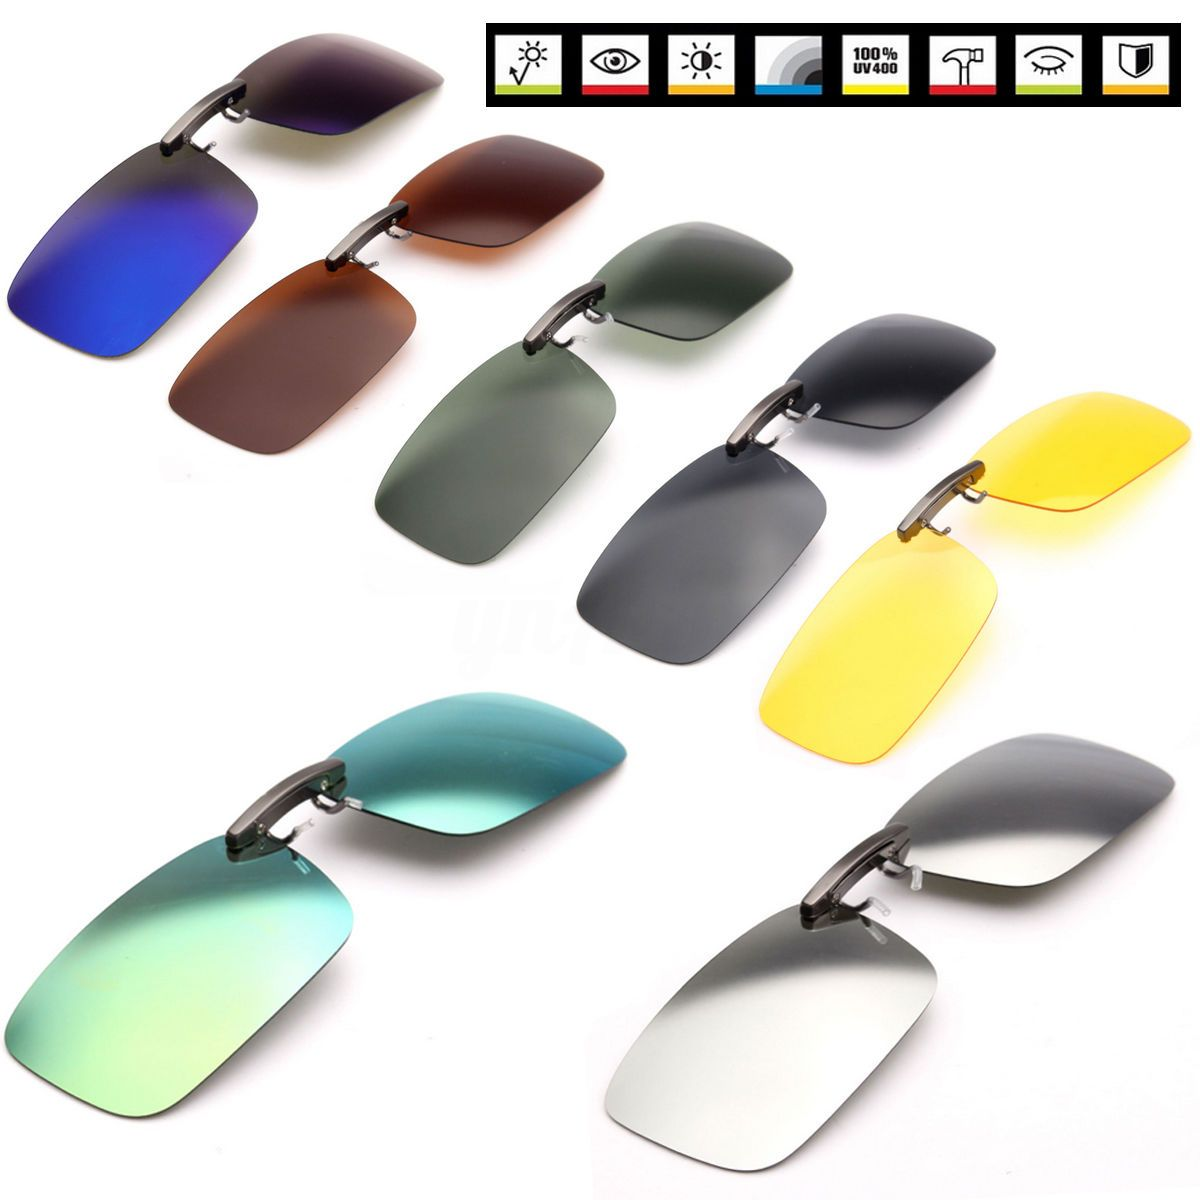 f49e56cce7b Polarized Sunglasses Clip-On Flip-Up Driving Glasses Day Night Vision Lens  Uv400